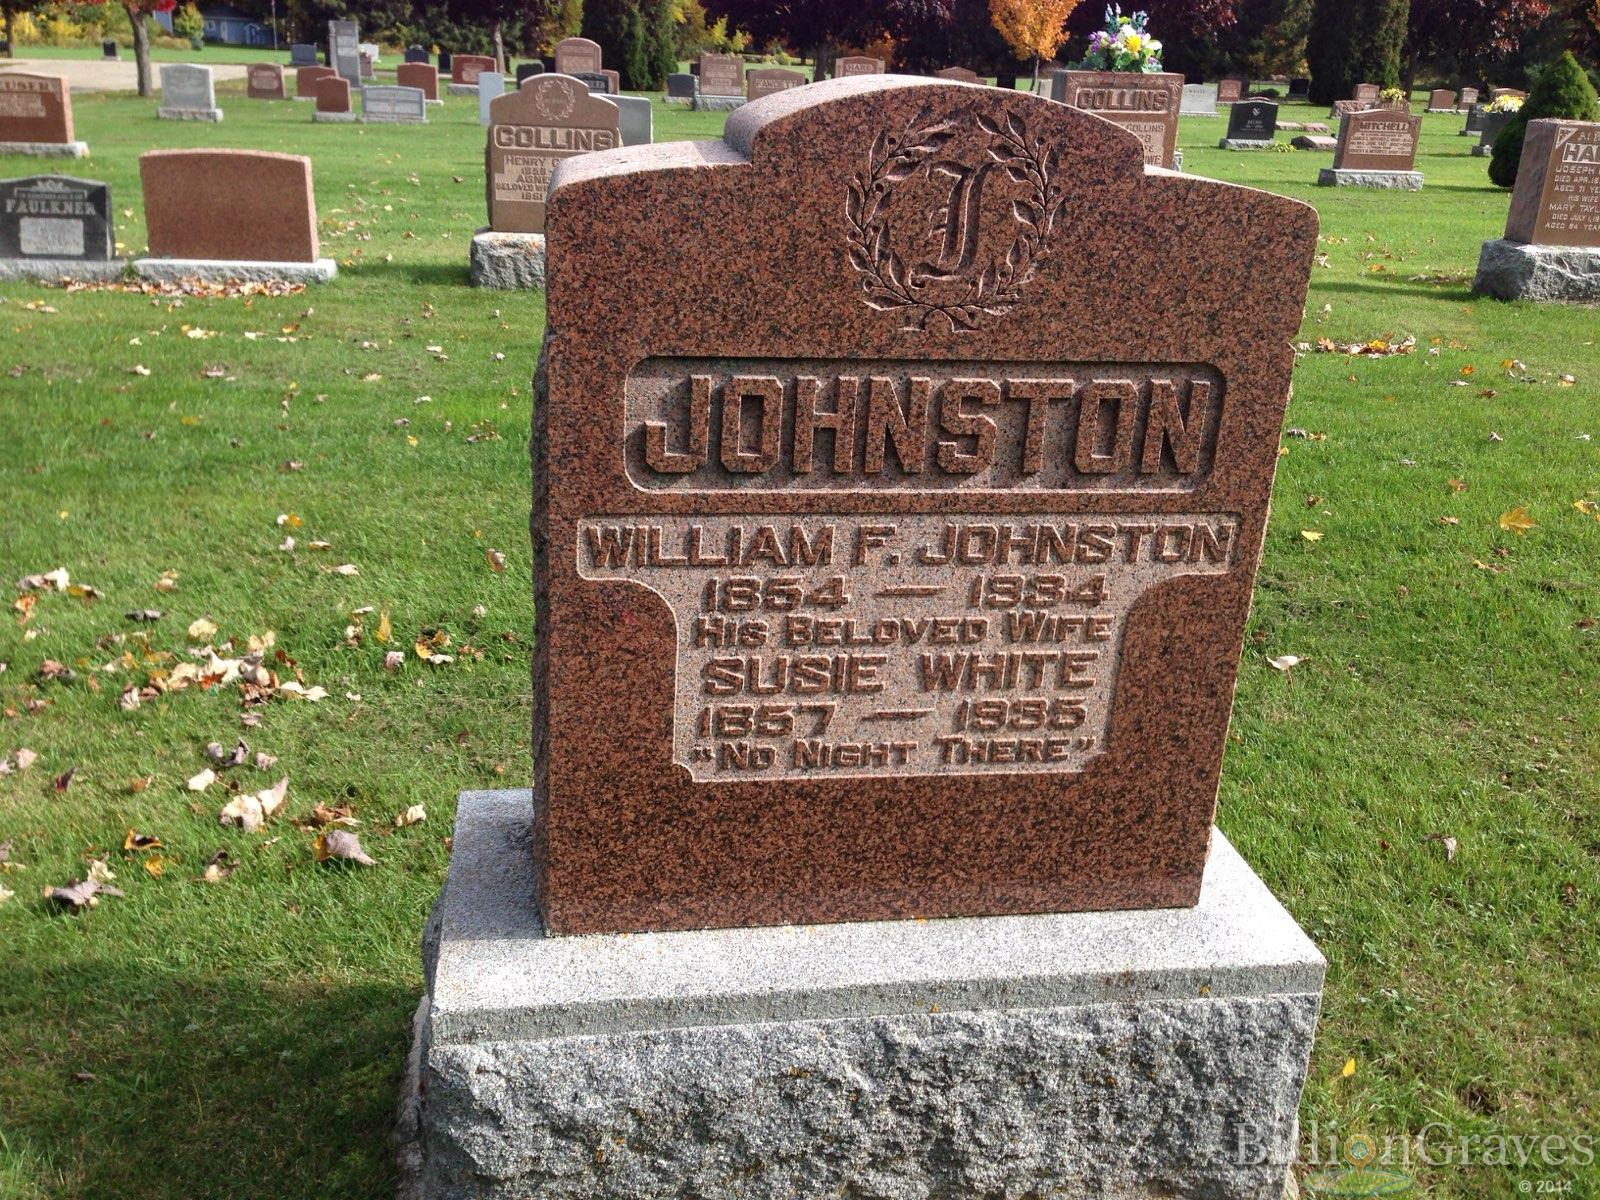 Gov. William F Johnston grave